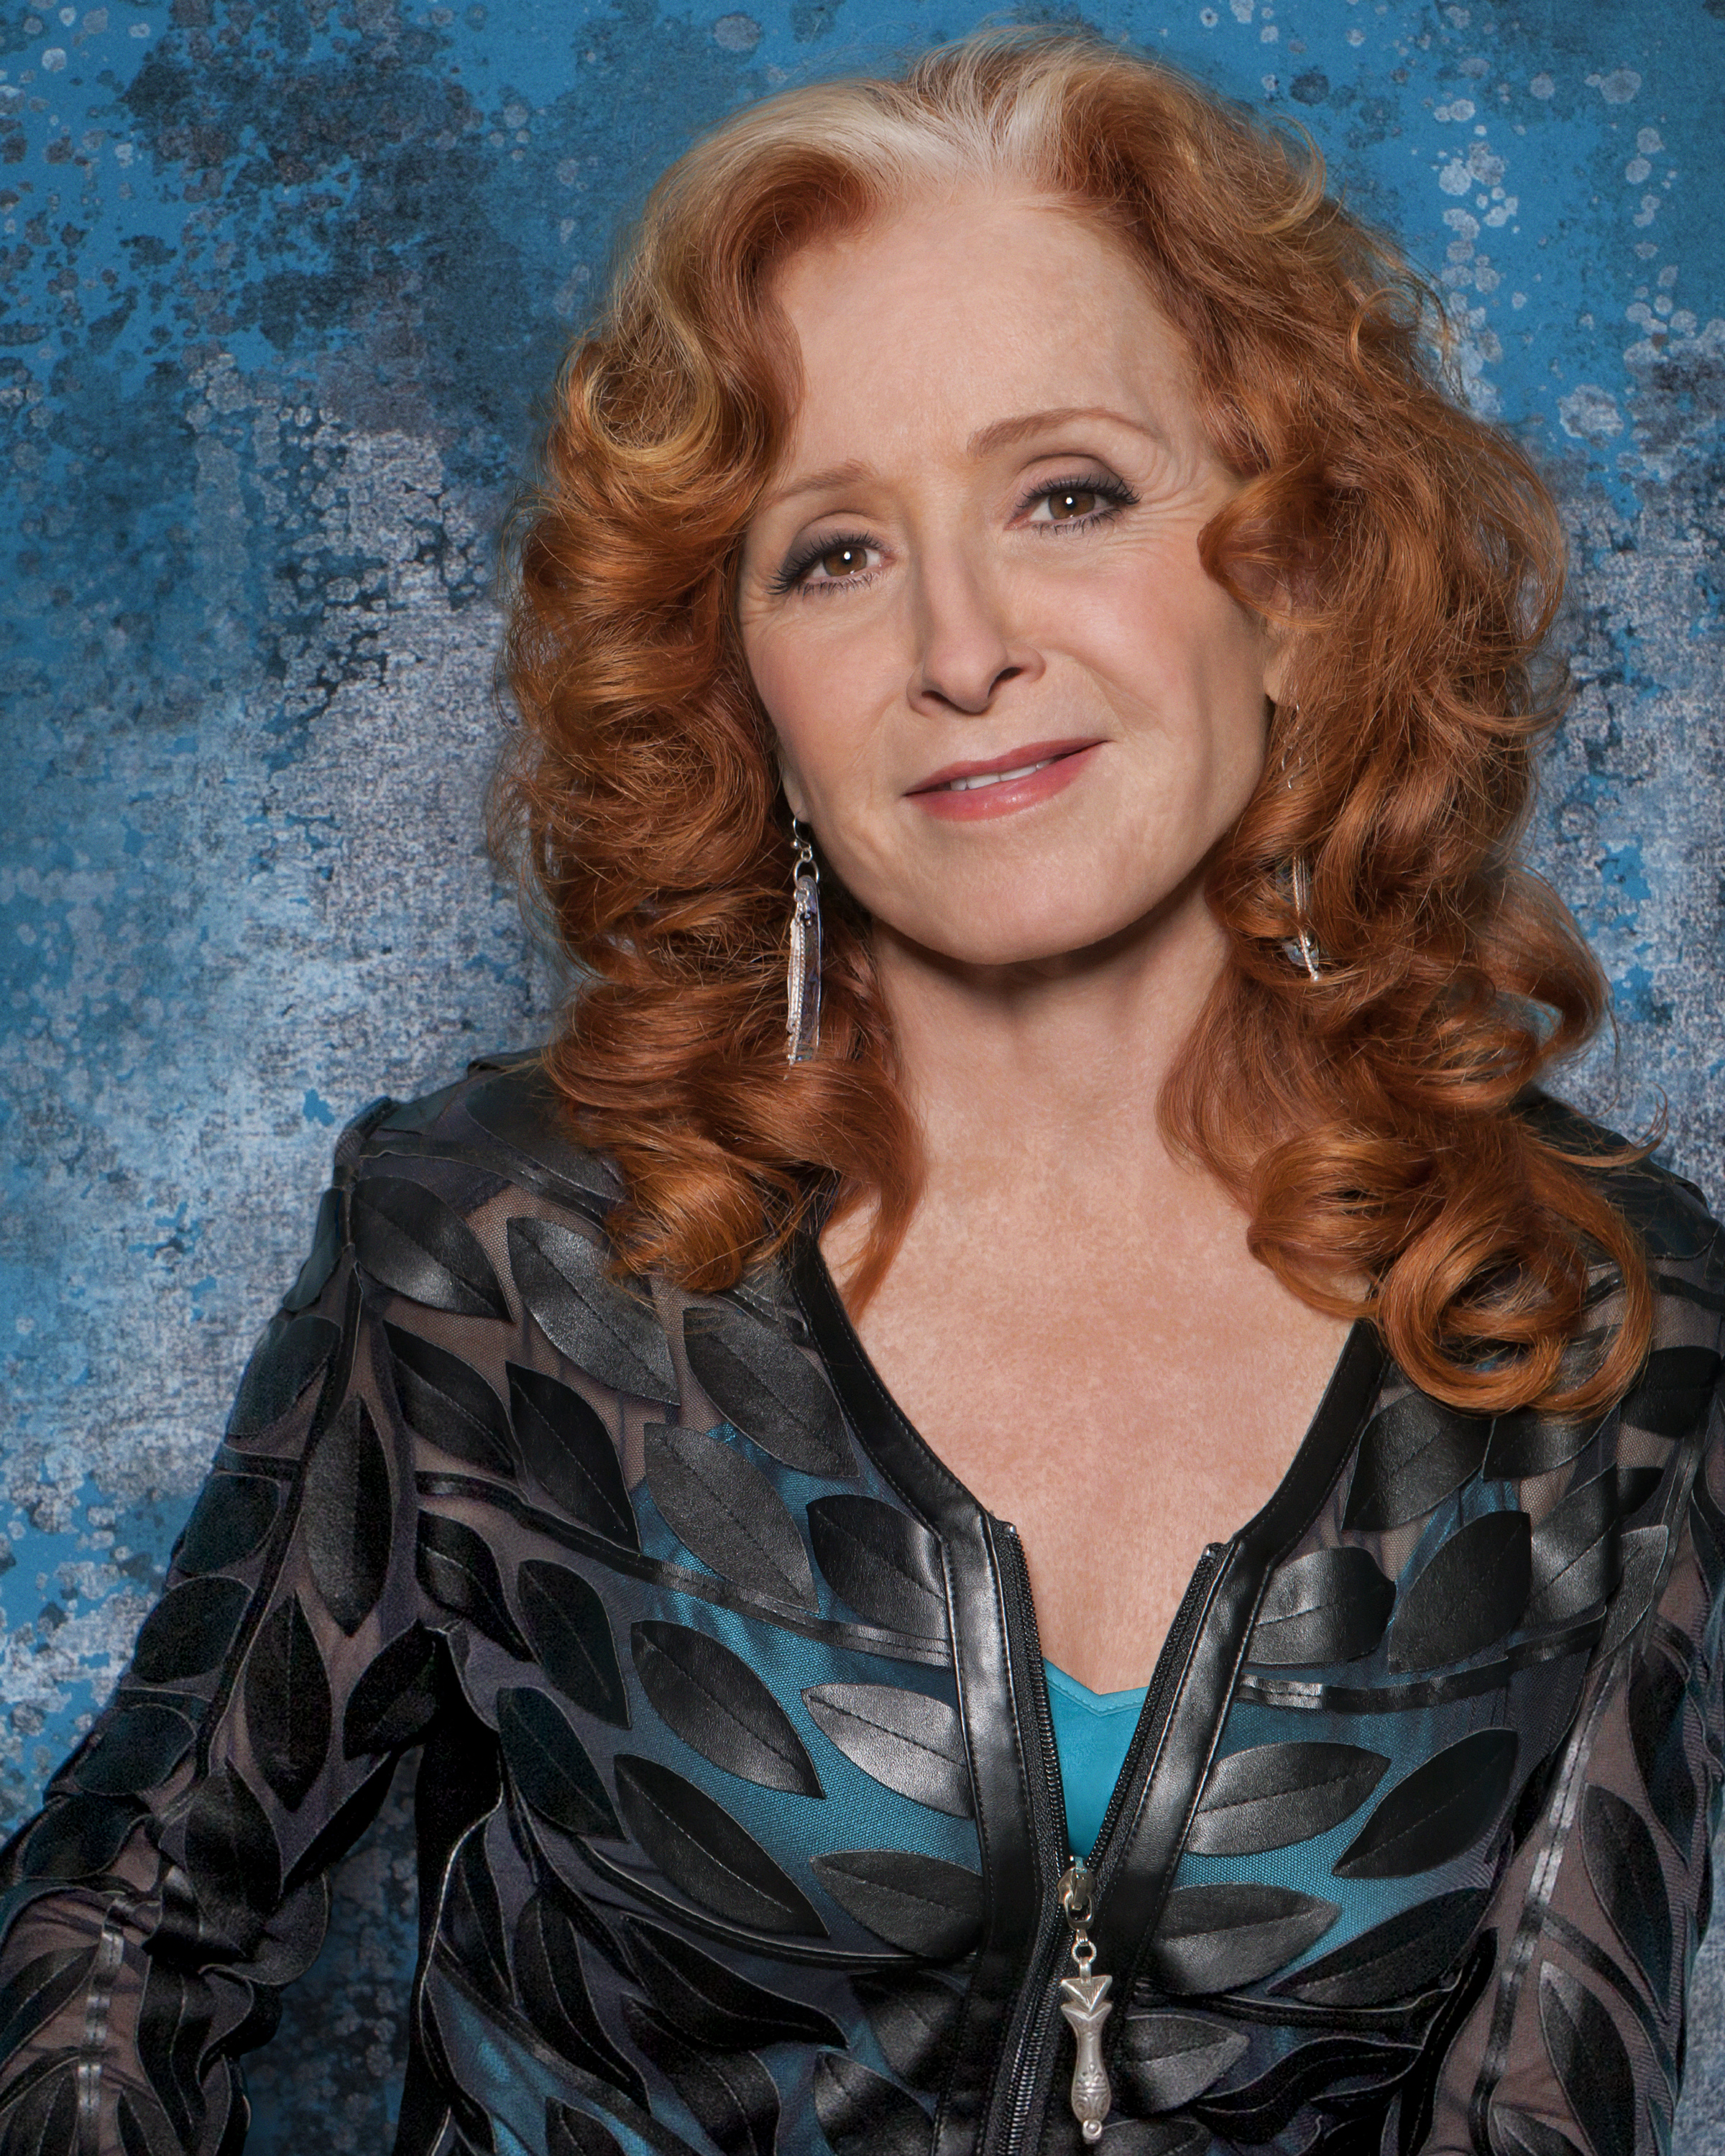 -images-uploads-gallery-Bonnie_Raitt_Color_headshot_credit_Marina_Chavez